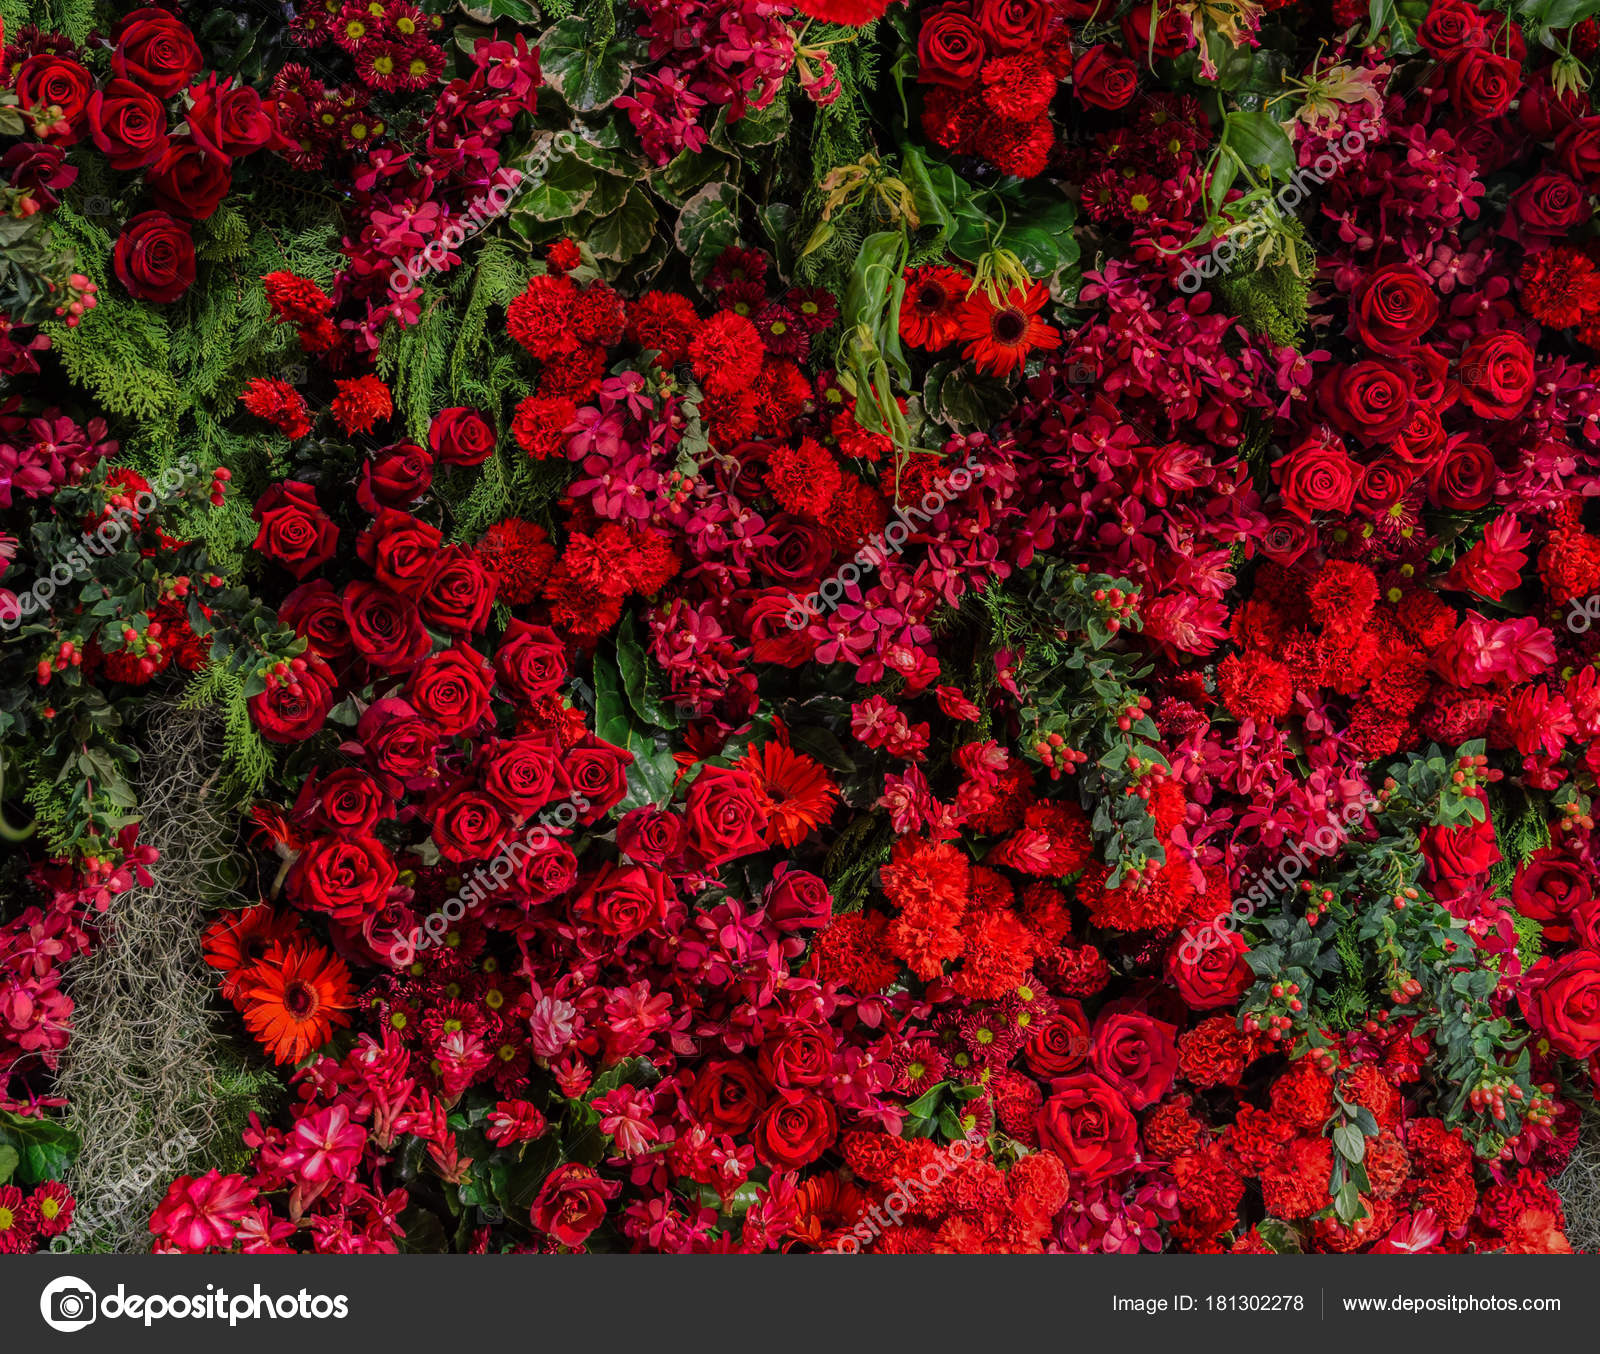 Beautiful fresh red roses and different types of red flowers dec– stock image